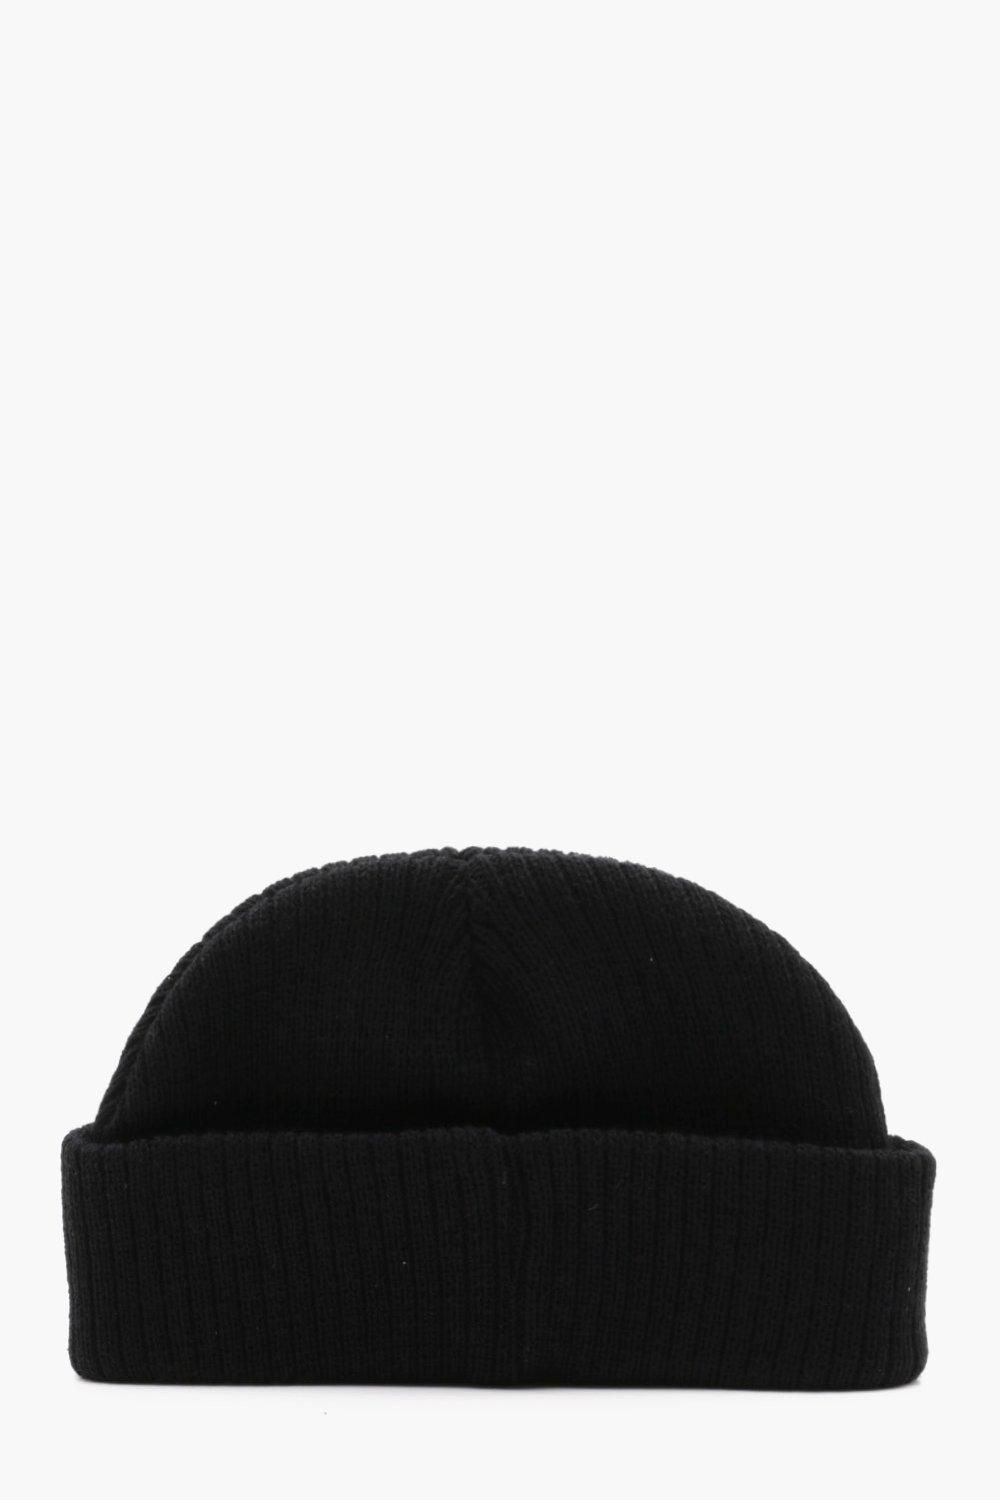 3bdd999ecfc Lyst - Boohoo Ribbed Knit Short Fit Beanie With Turn Up in Black for Men